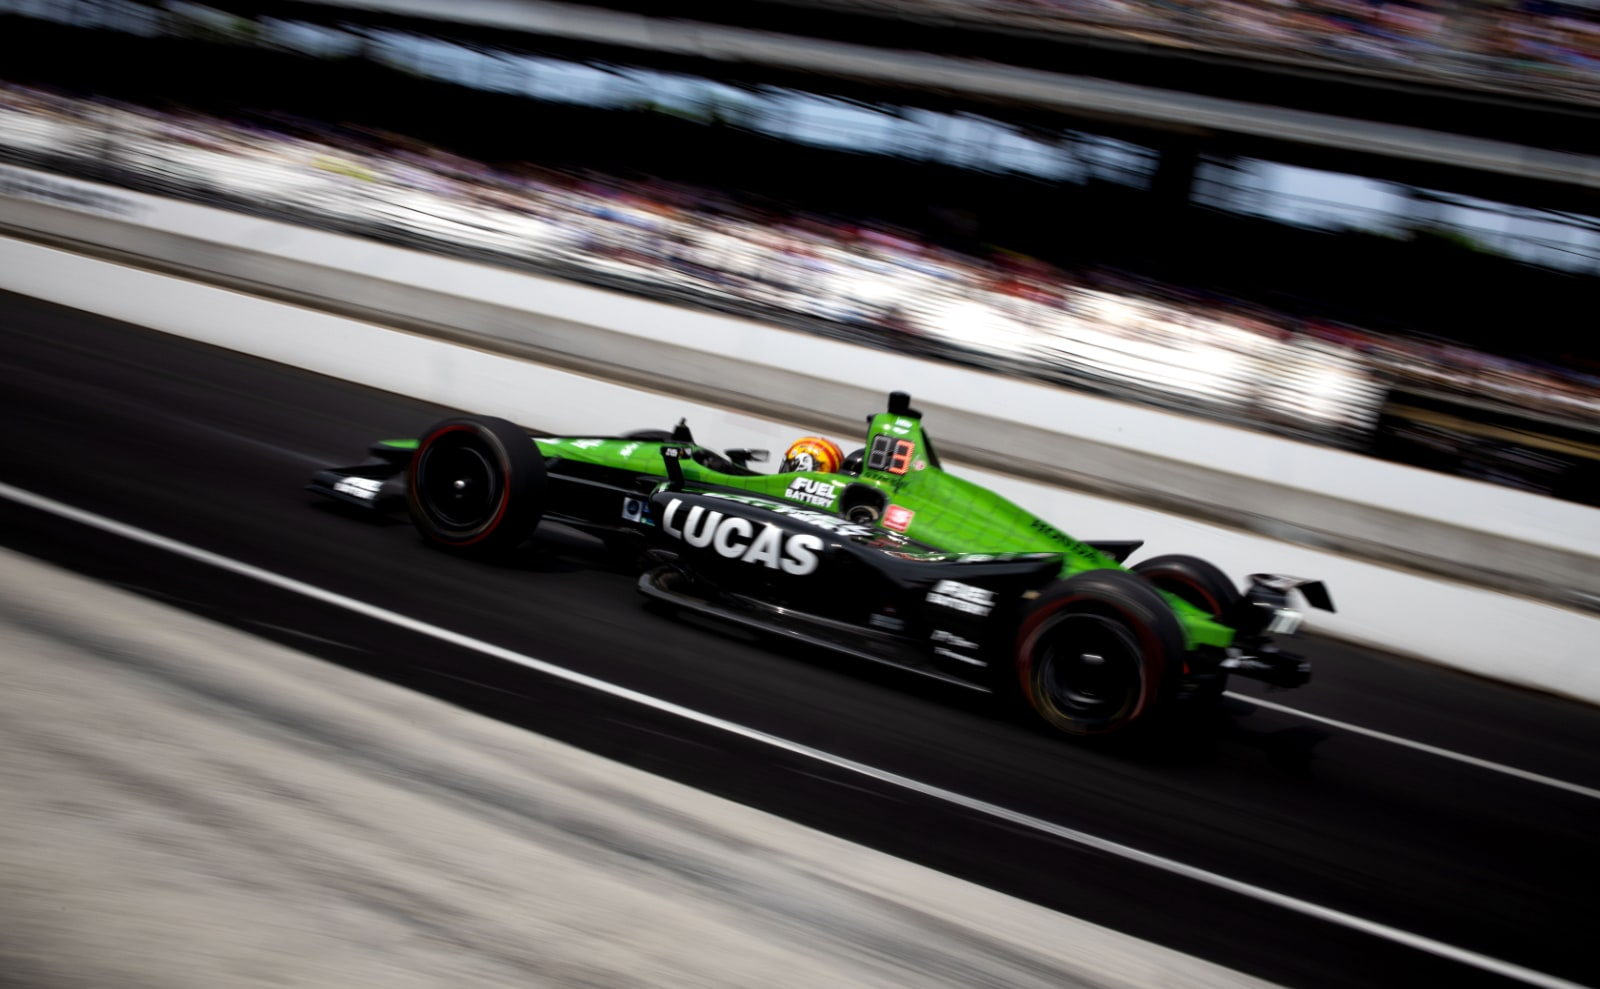 Oriol Servia rolls Lucas SPM Indy car down IMS pit lane